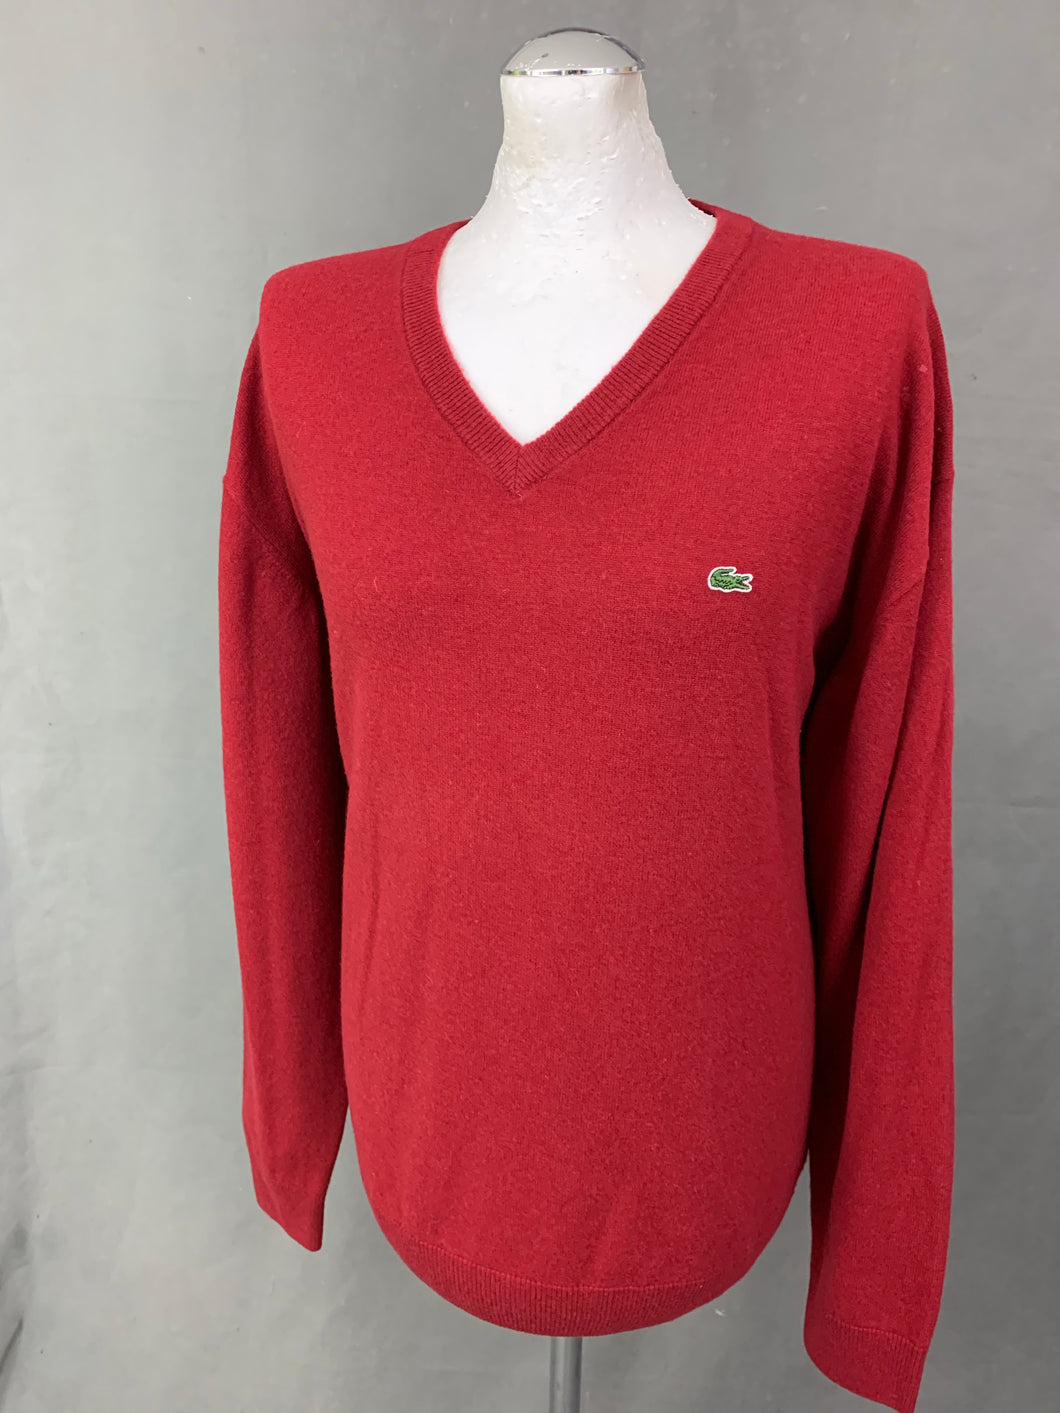 LACOSTE Mens Red Pure Virgin Wool V-Neck JUMPER LACOSTE Size 8 - 3XL XXXL